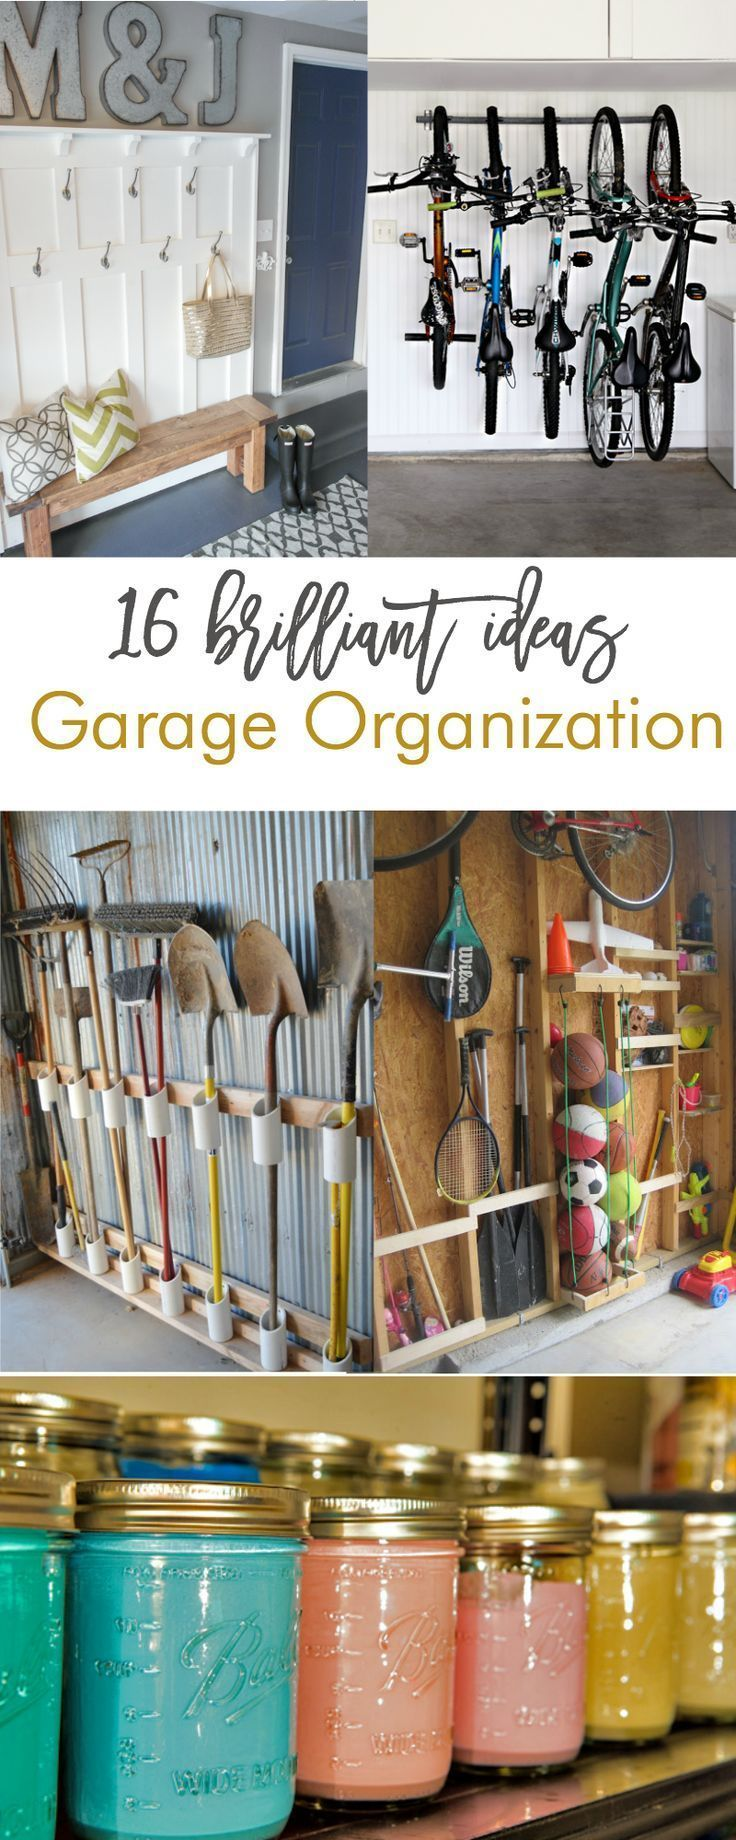 Garage Workshop Organization Ideas Part - 25: 16 Brilliant DIY Garage Organization Ideas